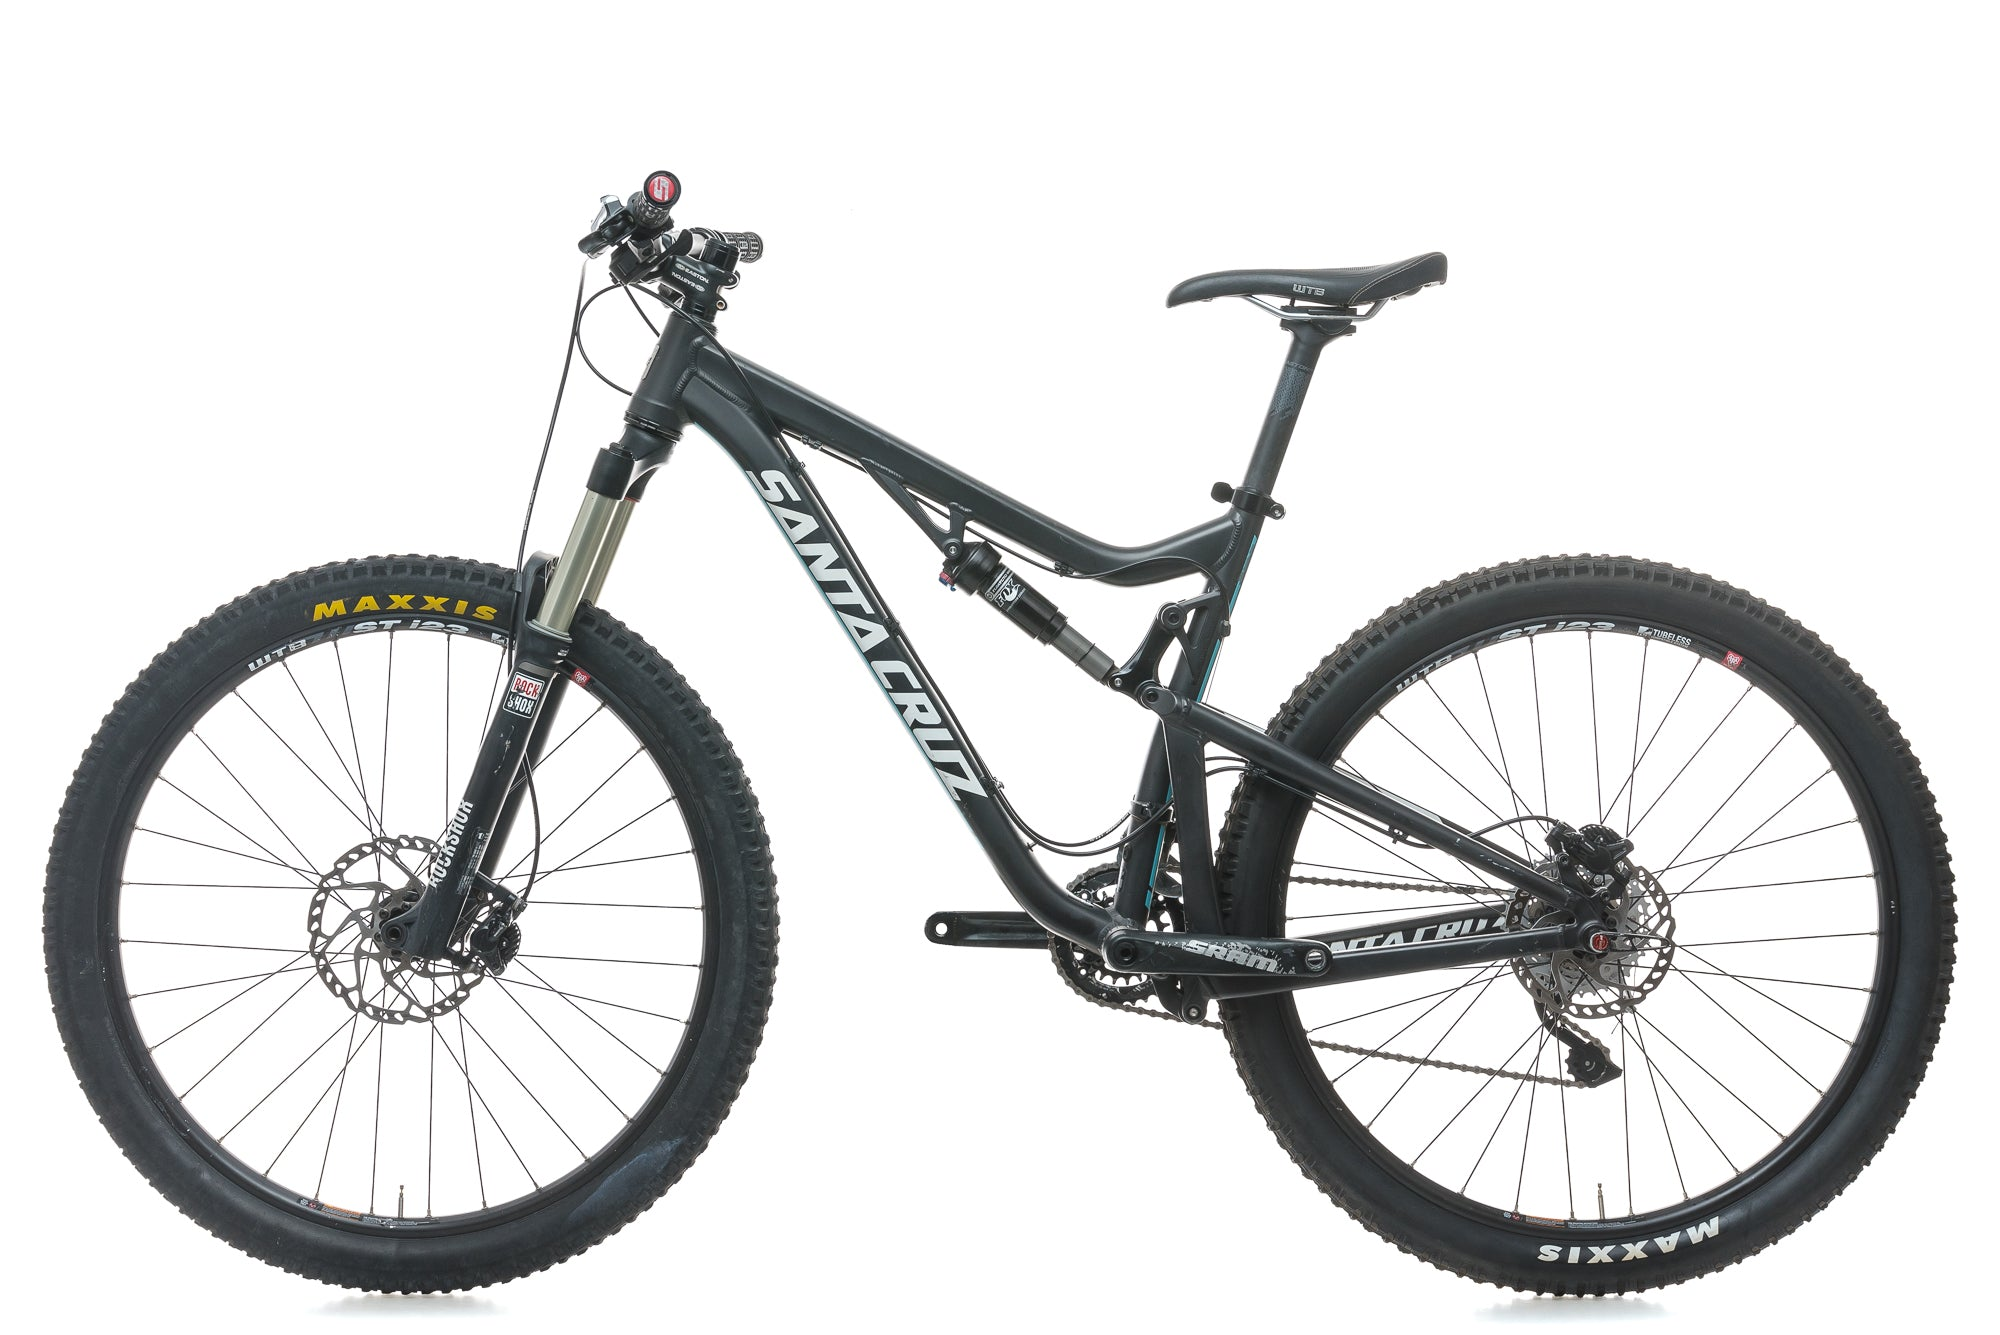 Santa Cruz 5010 Medium Bike - 2015